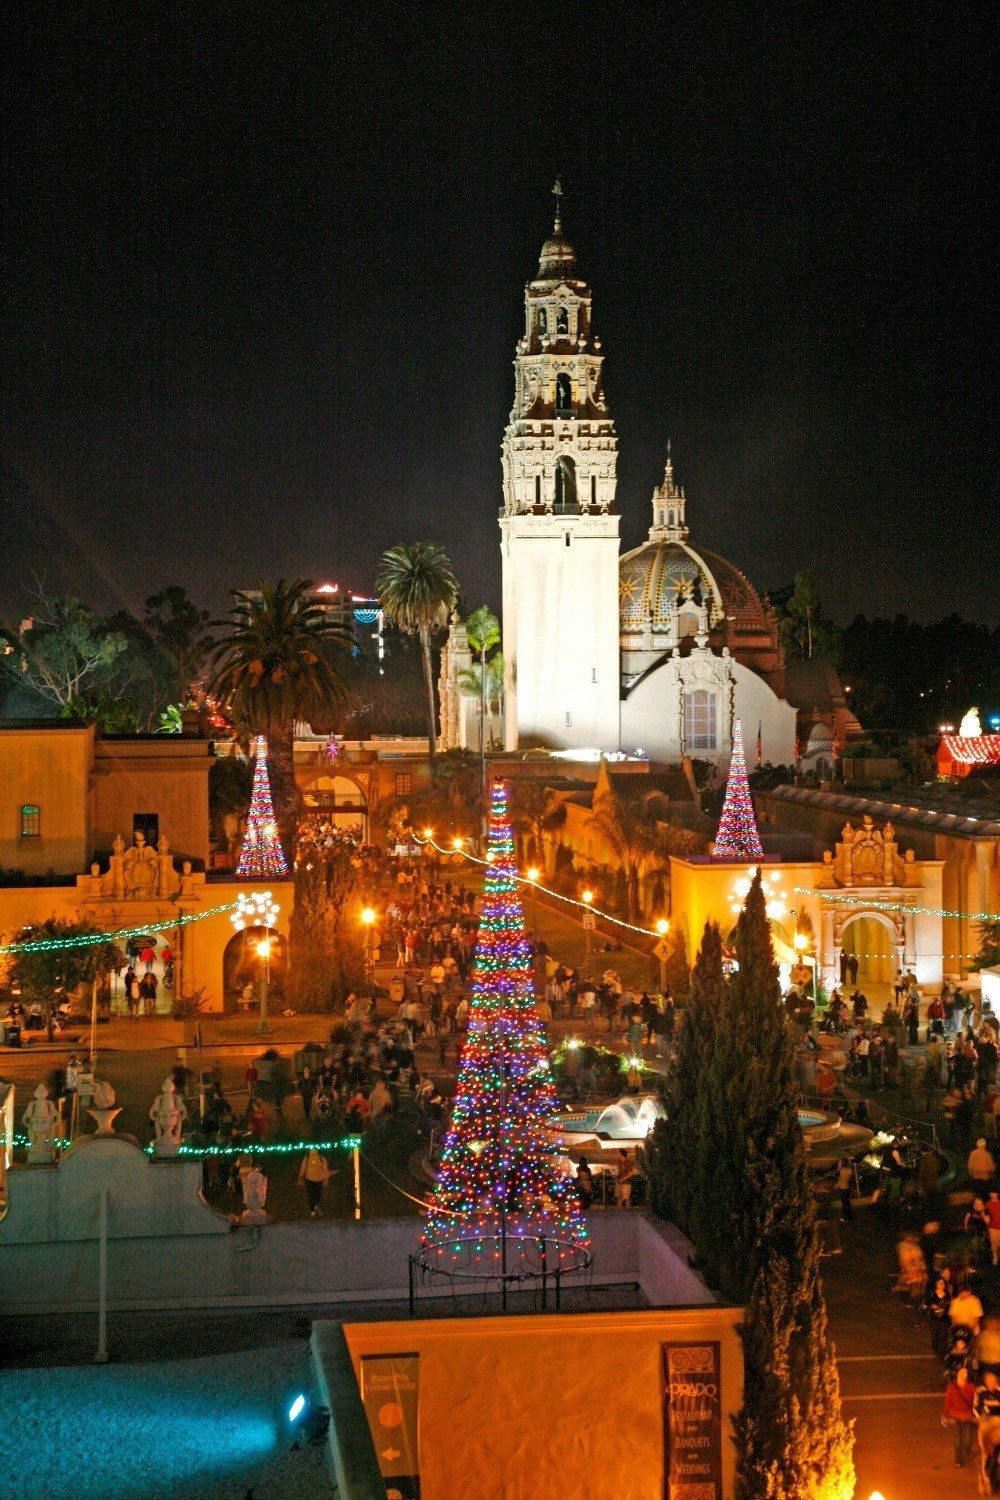 San Diego Christmas Events 2020 Christmas Event In San Diego 2020 | Uhnnbk.newyear2020theme.info